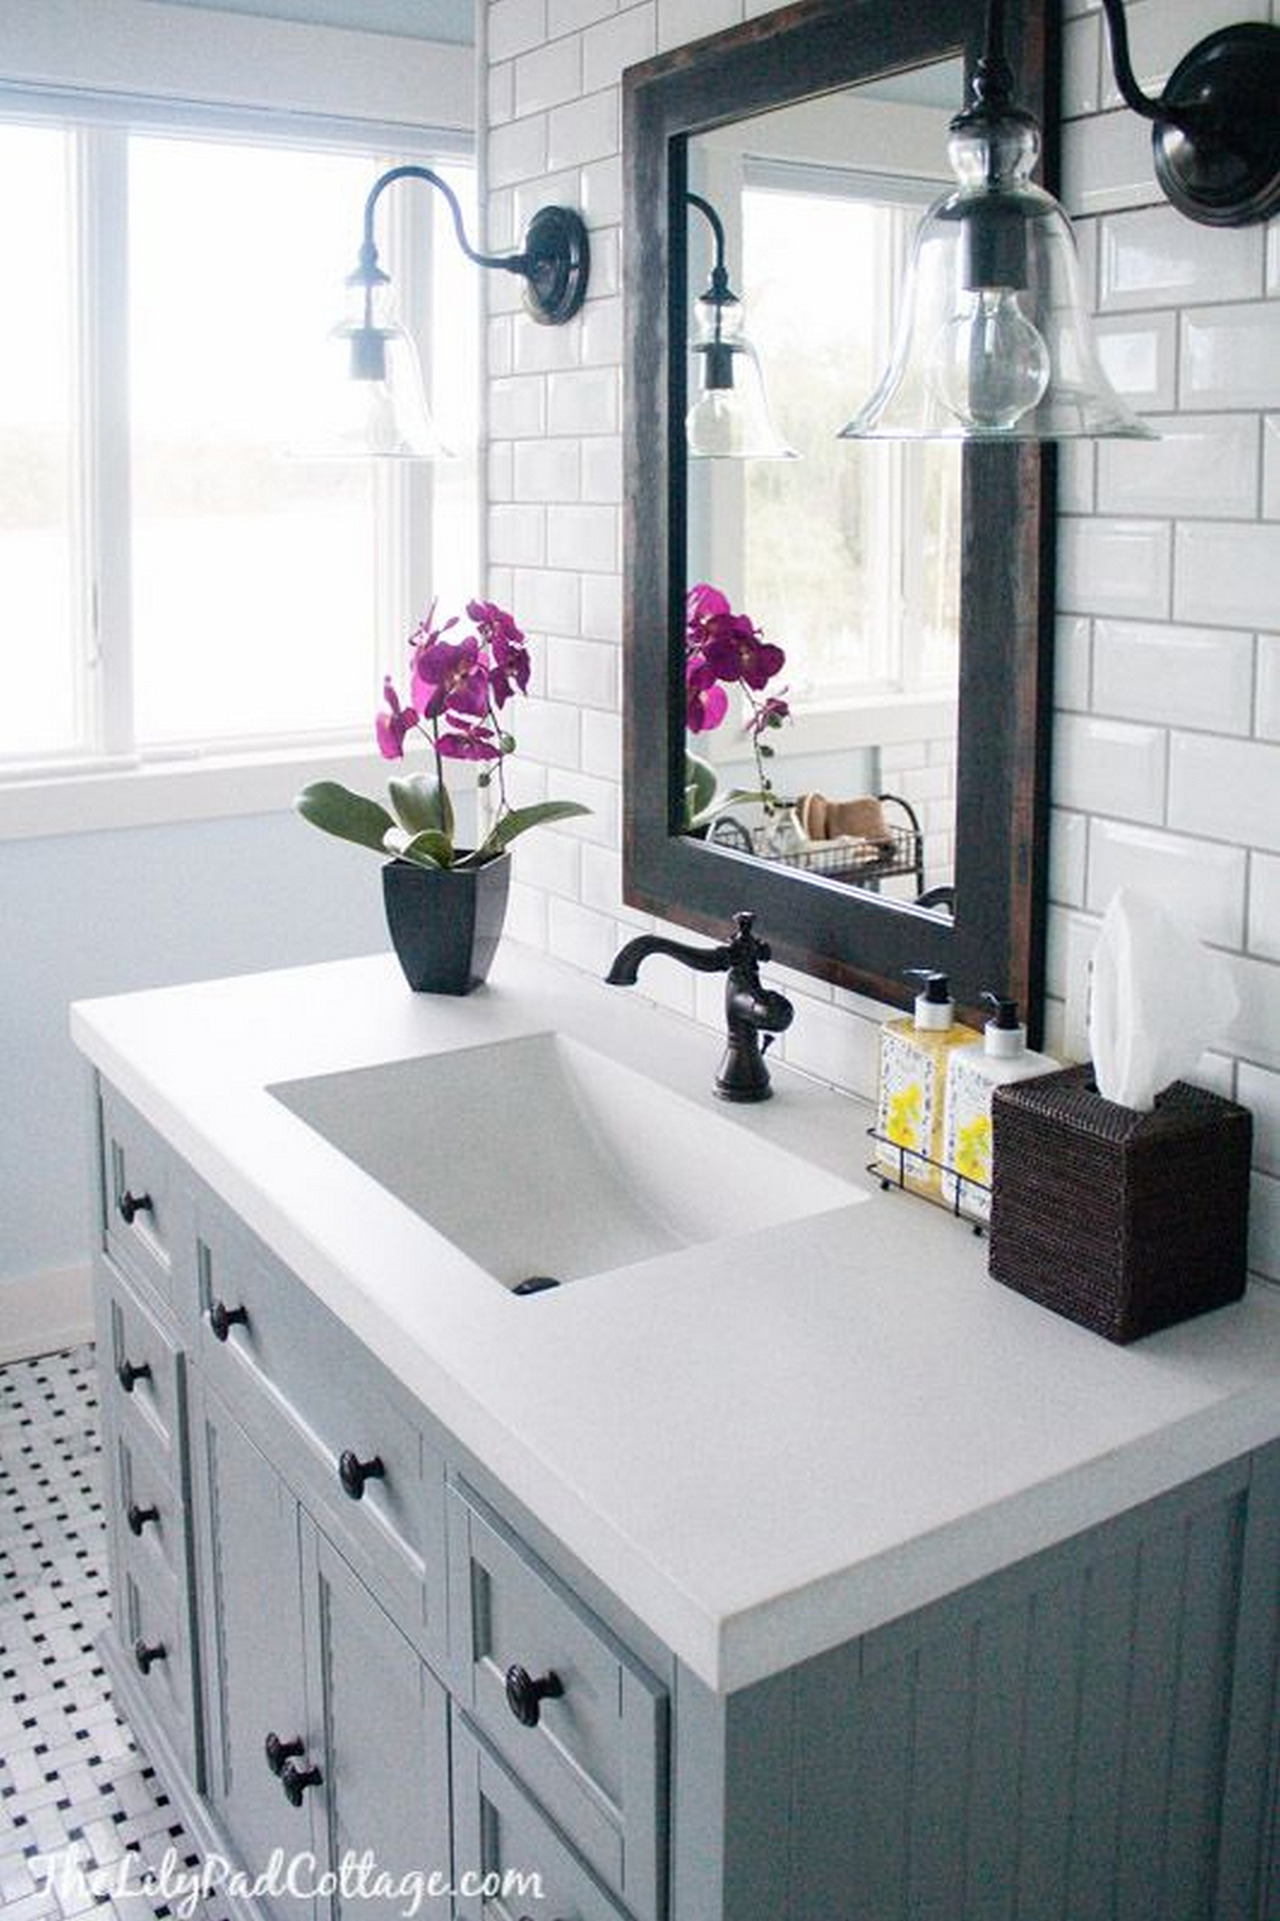 Ideas for Bathroom Decorations Luxury 25 Best Bathroom Decor Ideas and Designs that are Trendy In 2020